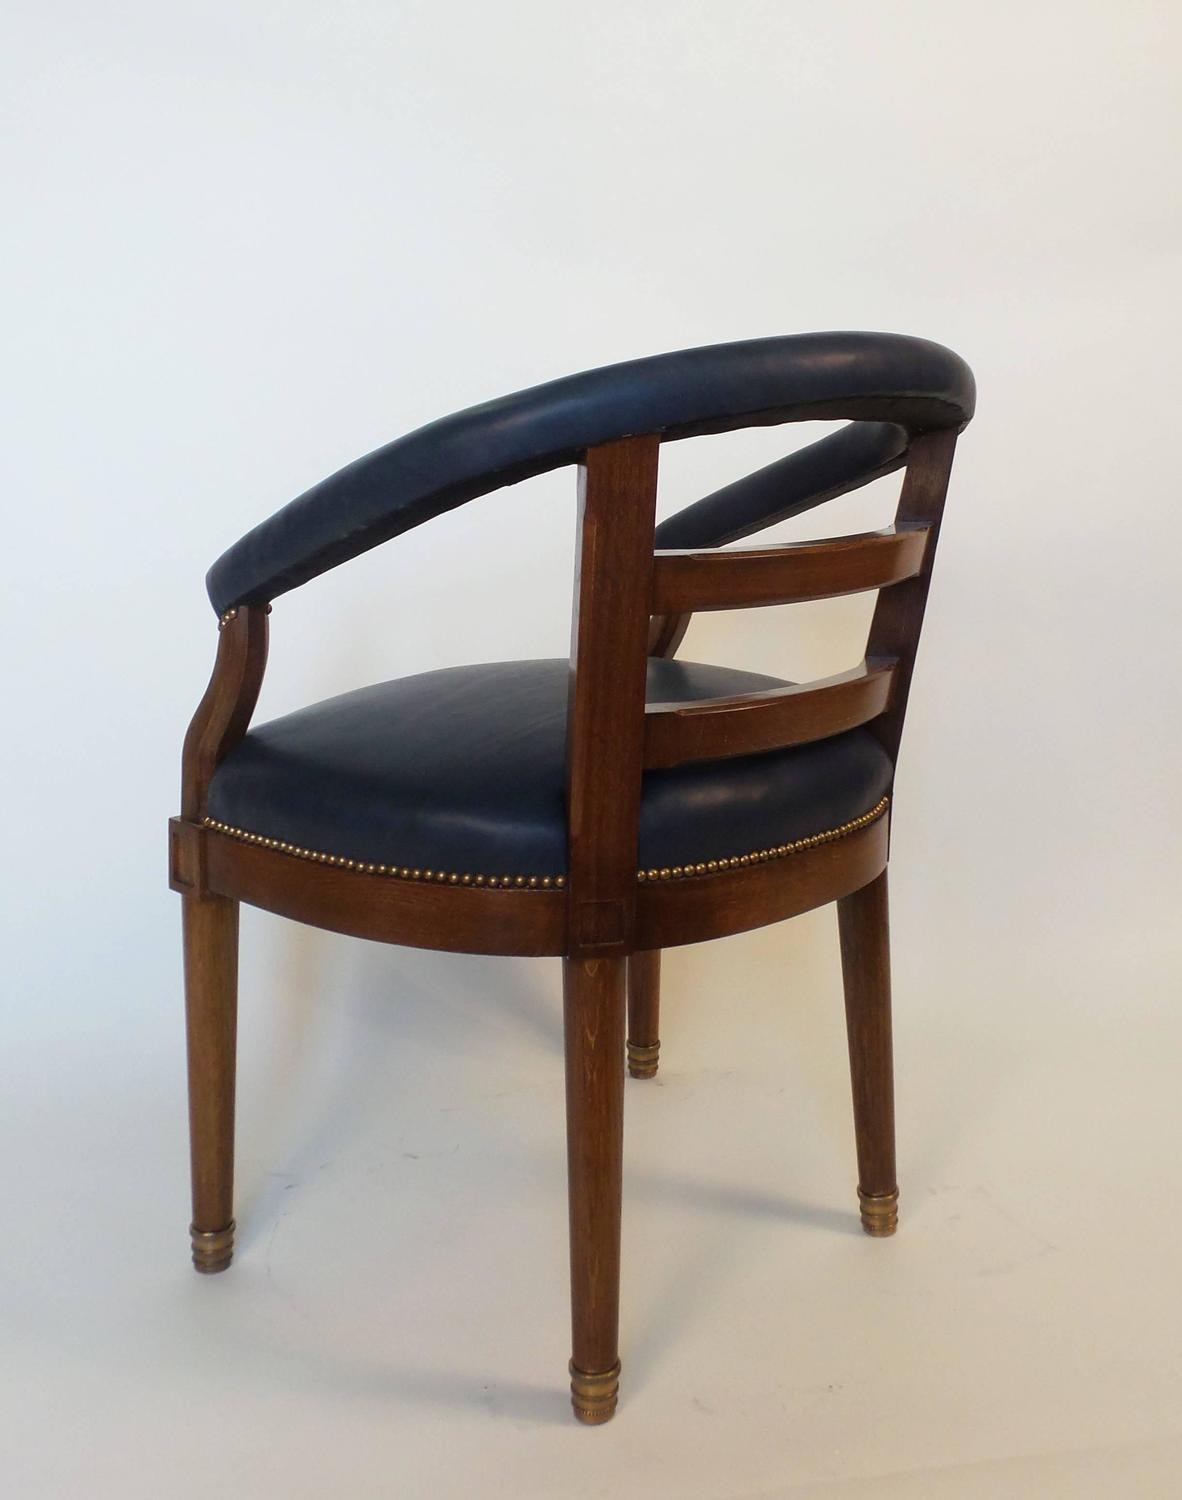 American Barrel Back Armchair For Sale at 1stdibs